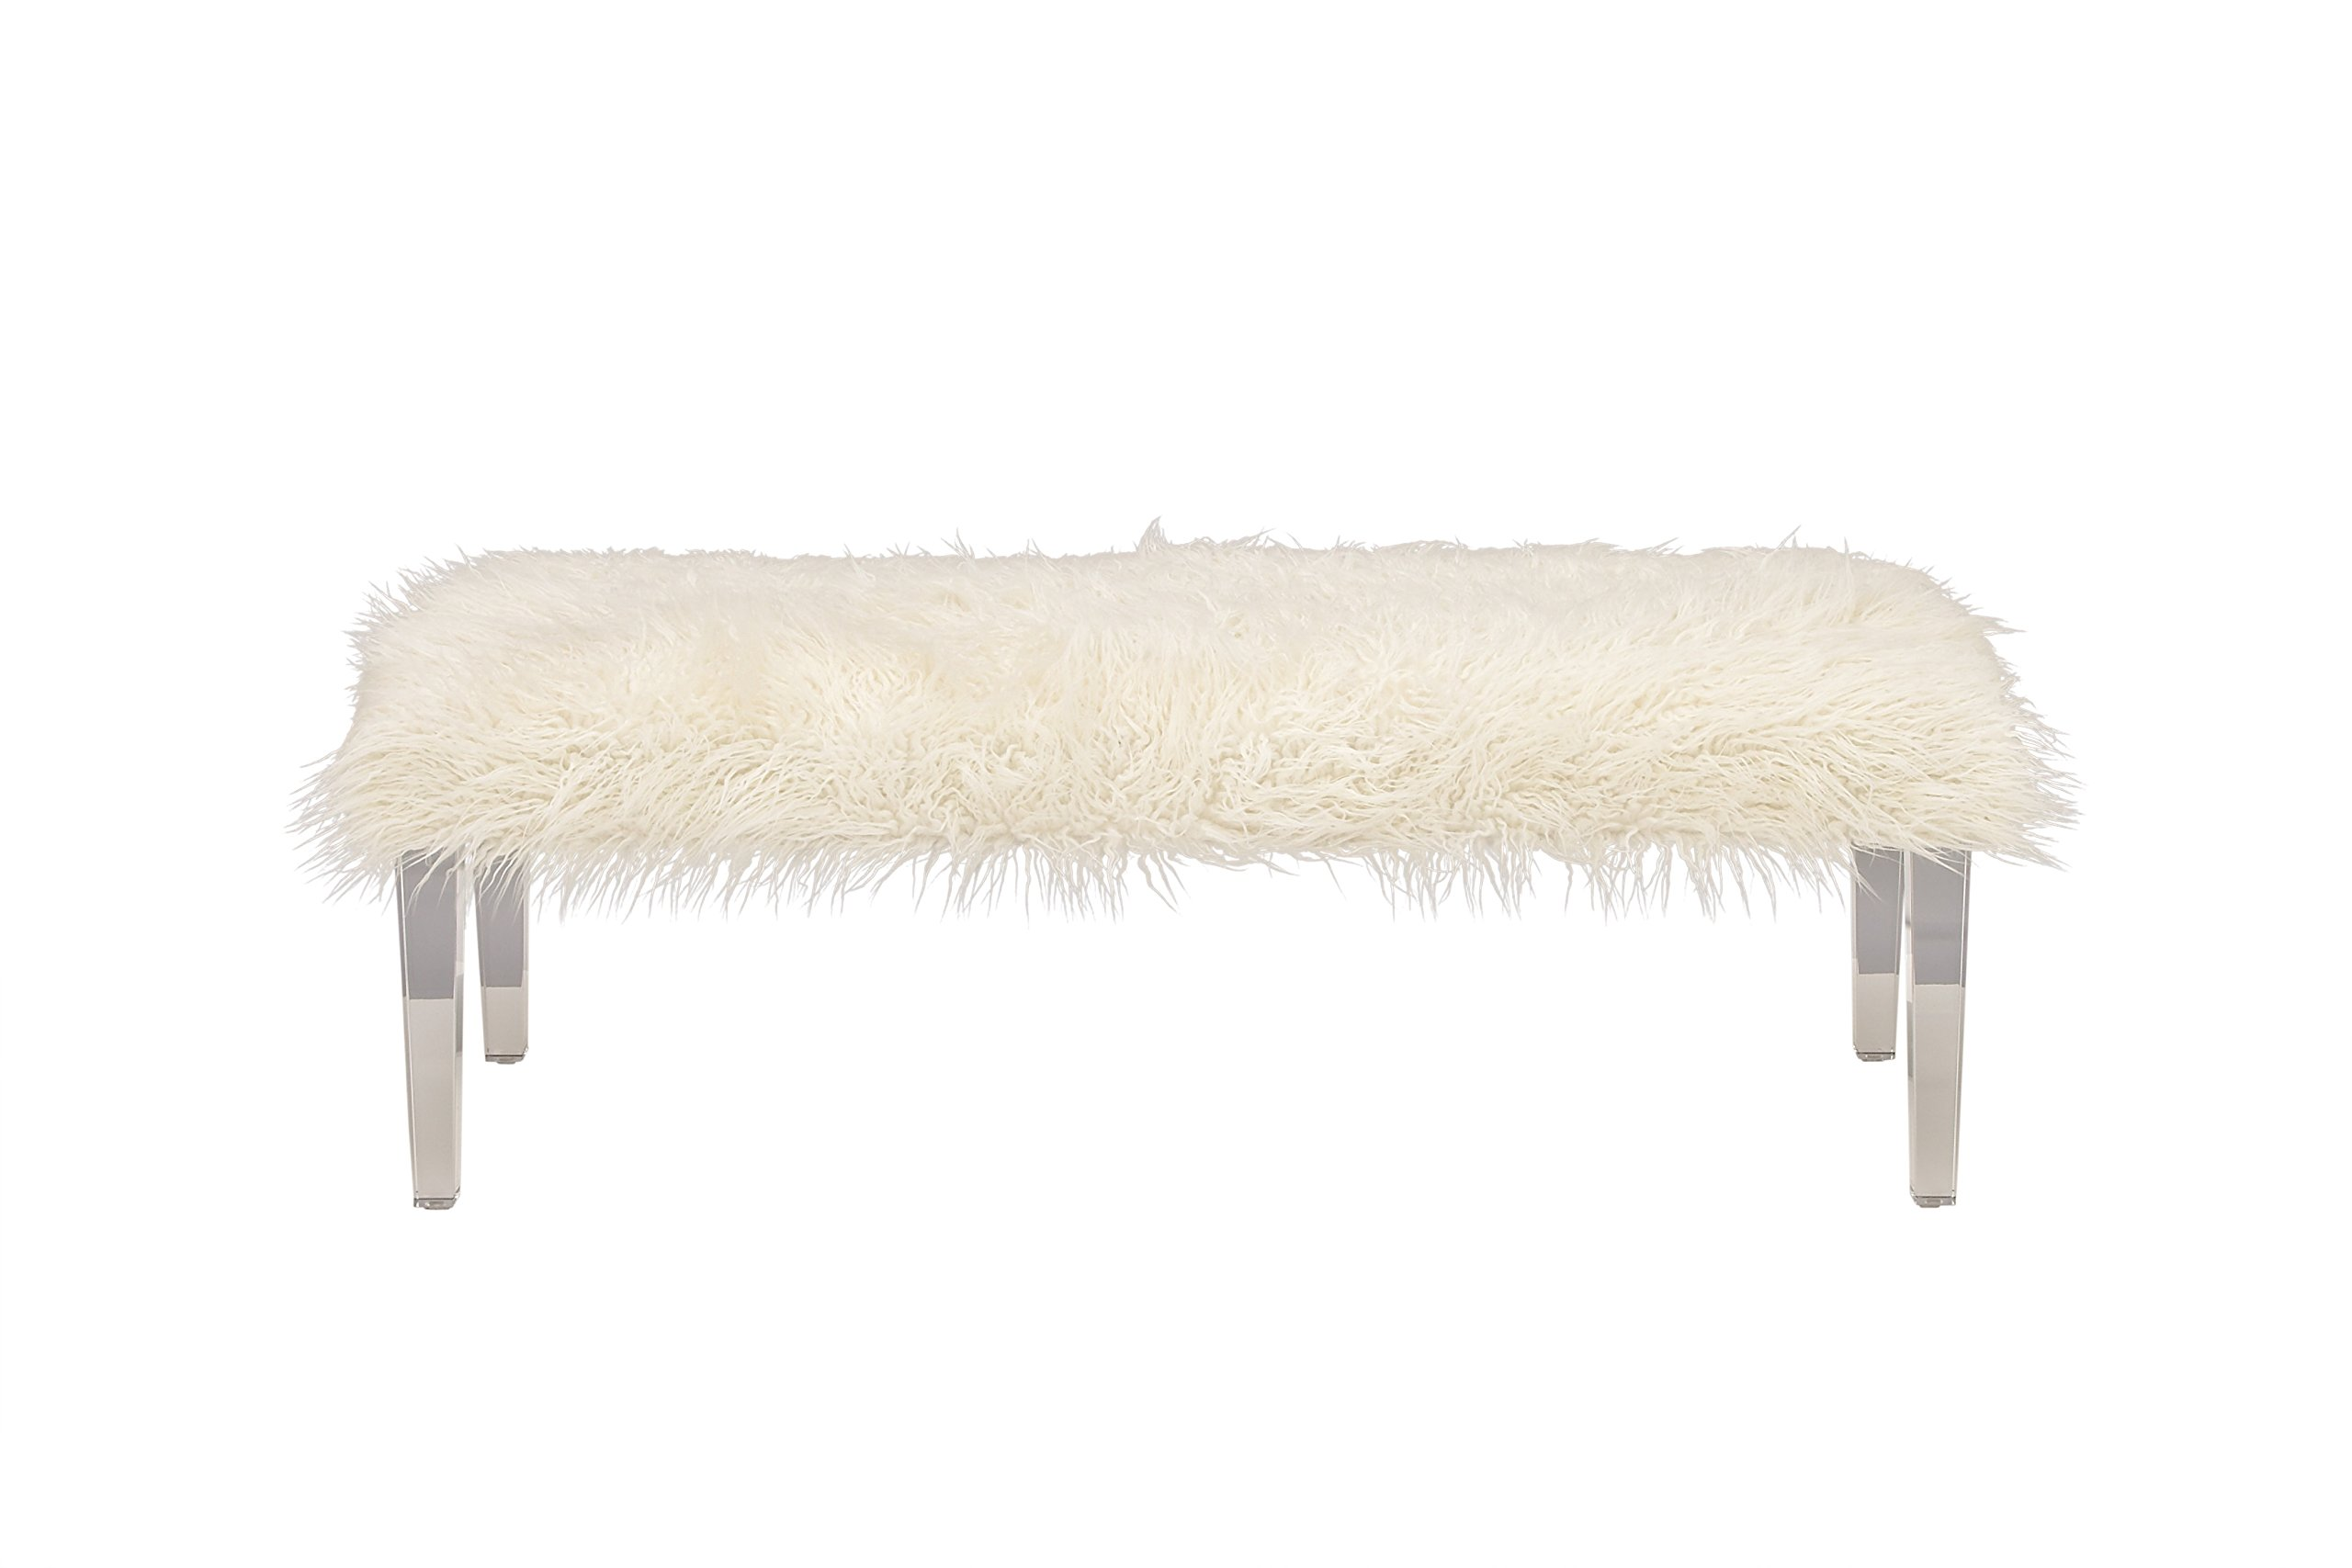 Deco 79 33003 Bench, 55'' x 19'', White, Clear